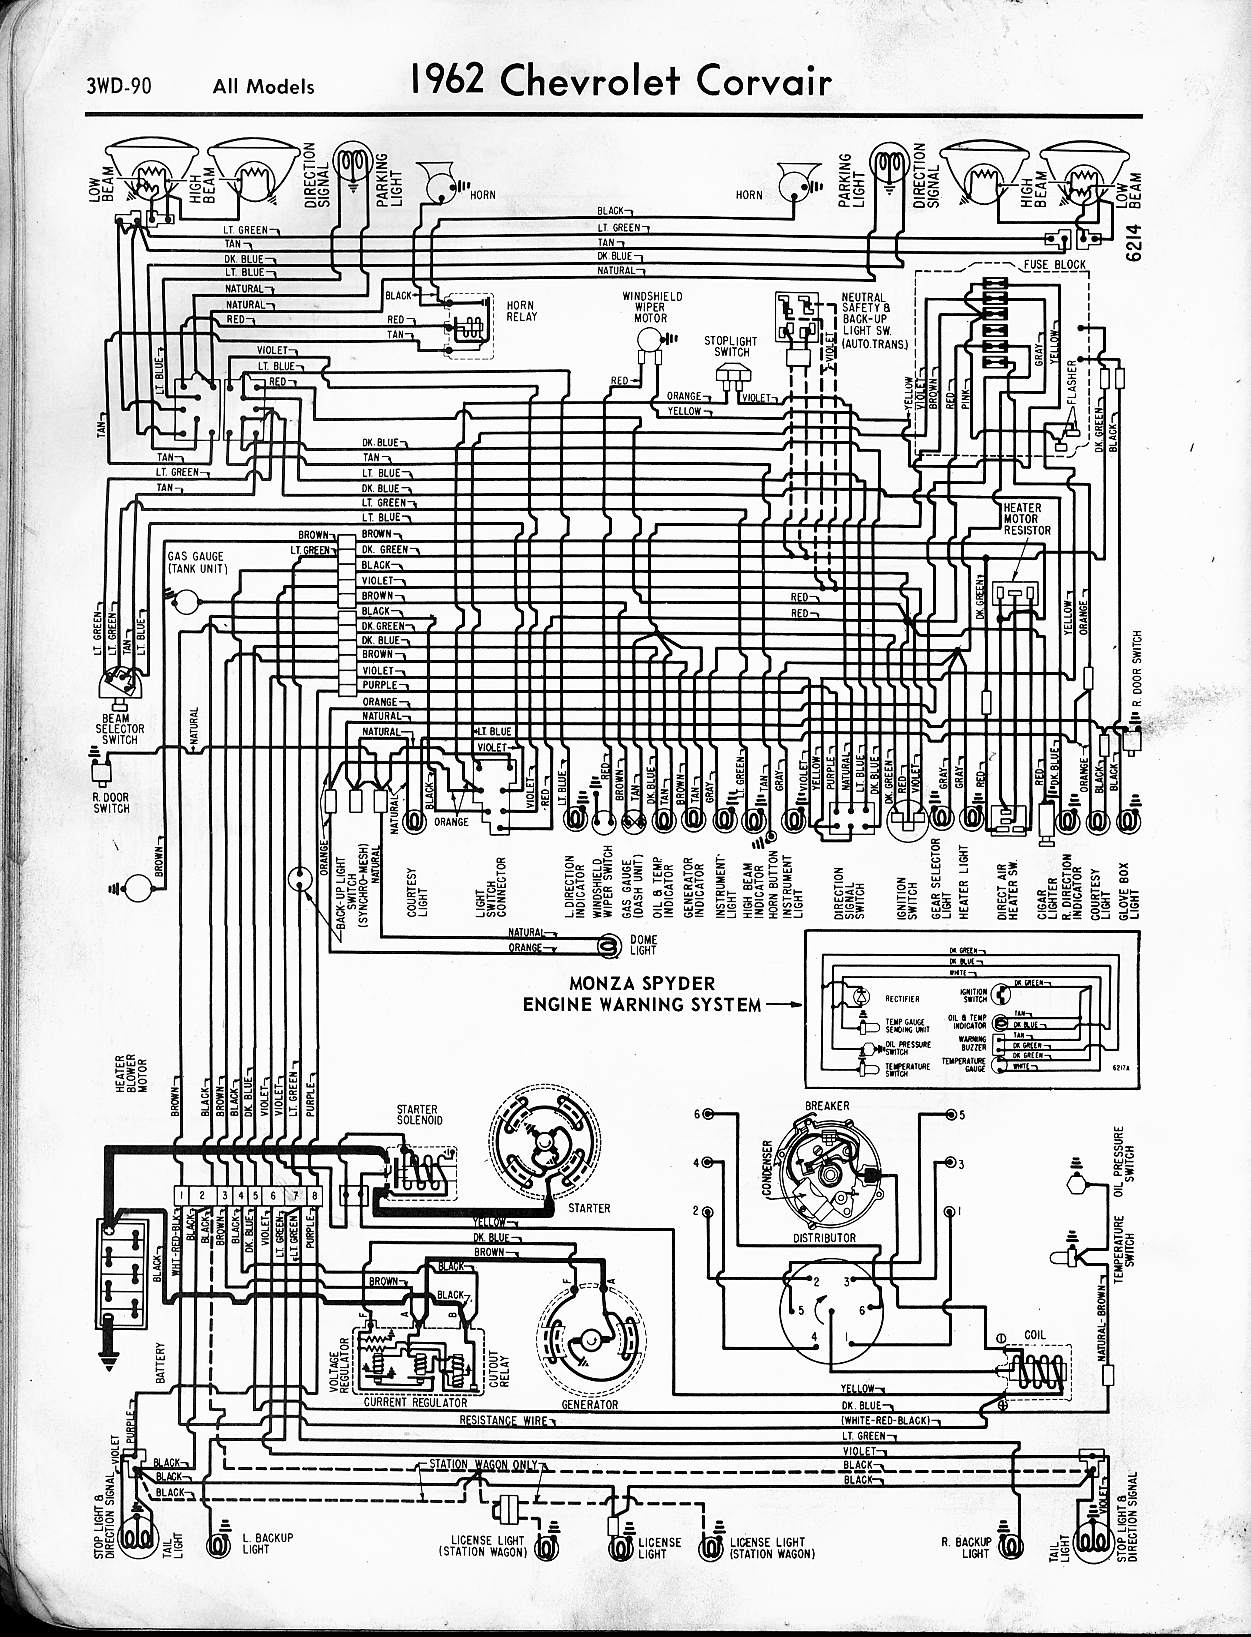 62 Chevy Wiper Motor Wiring Diagram Trusted 57 1962 Truck Starter Search For Diagrams U2022 Gmc